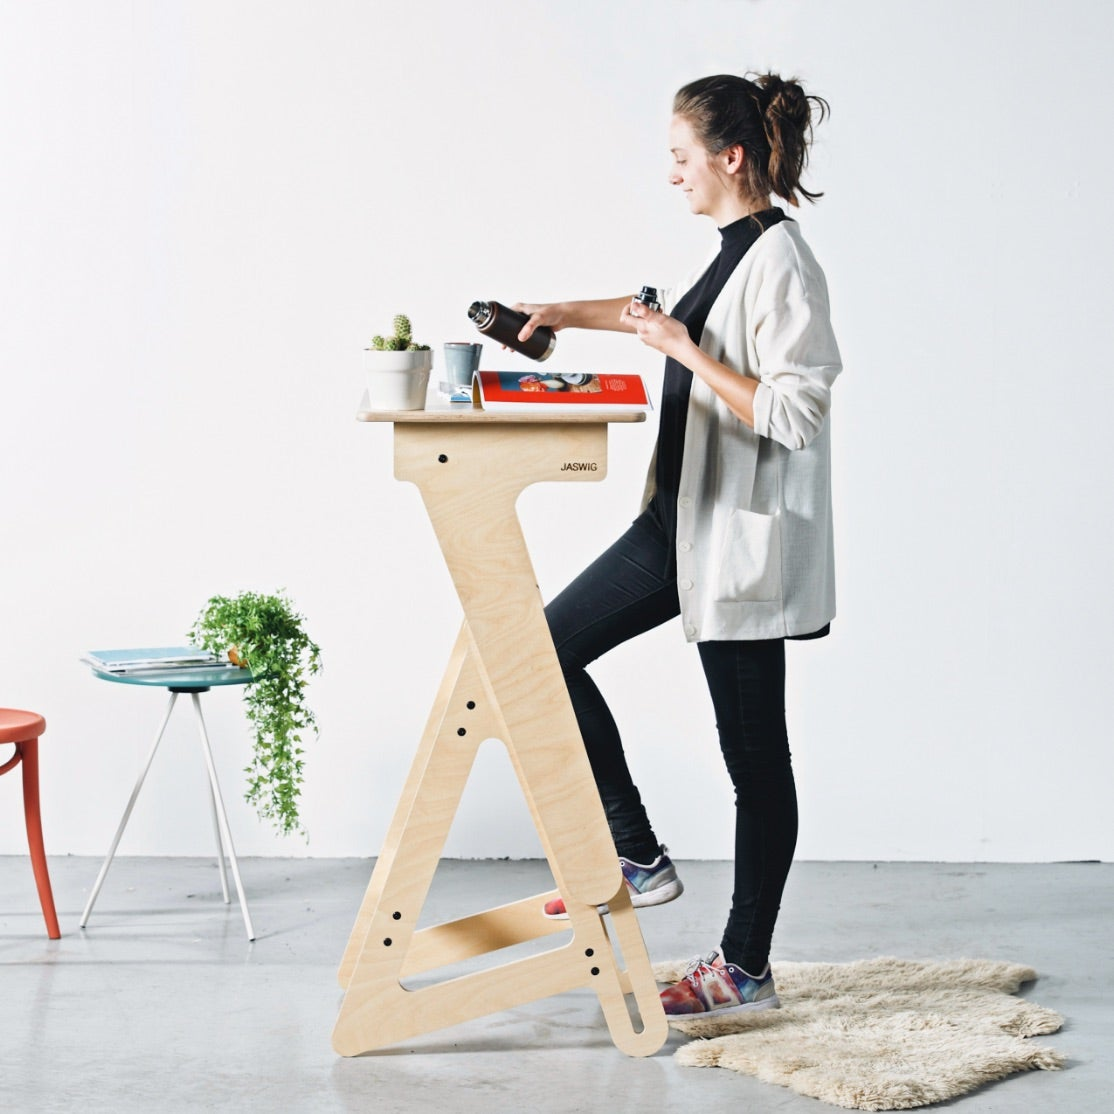 Jaswig standing desk in use by a woman working